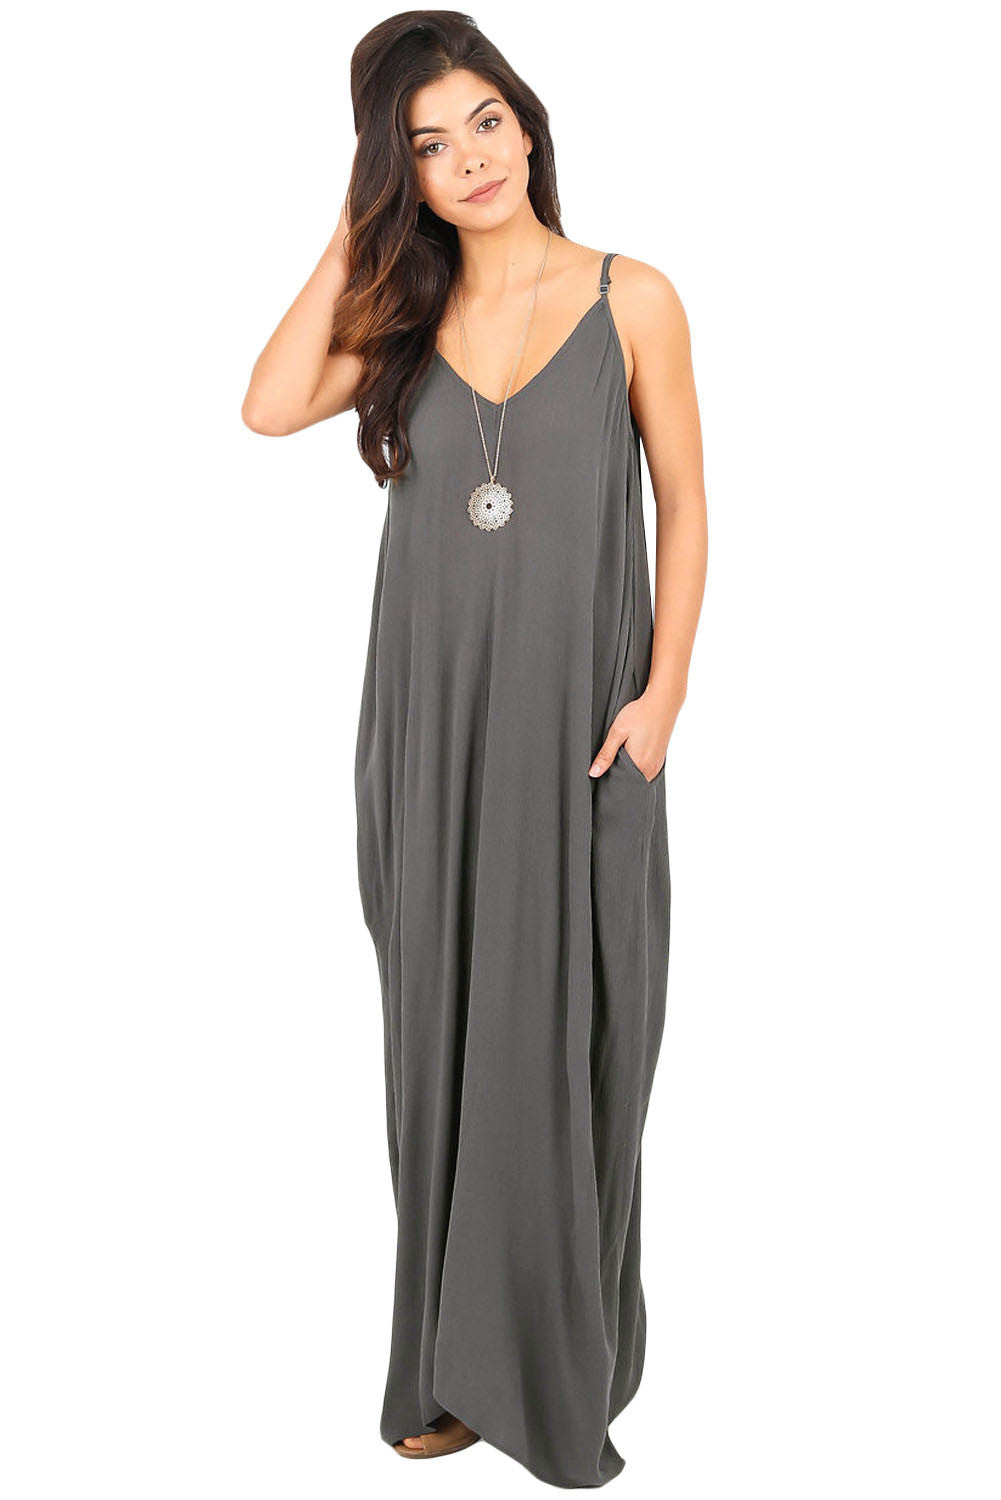 Her Essential Black Boho Pocketed Styling Maxi Dress